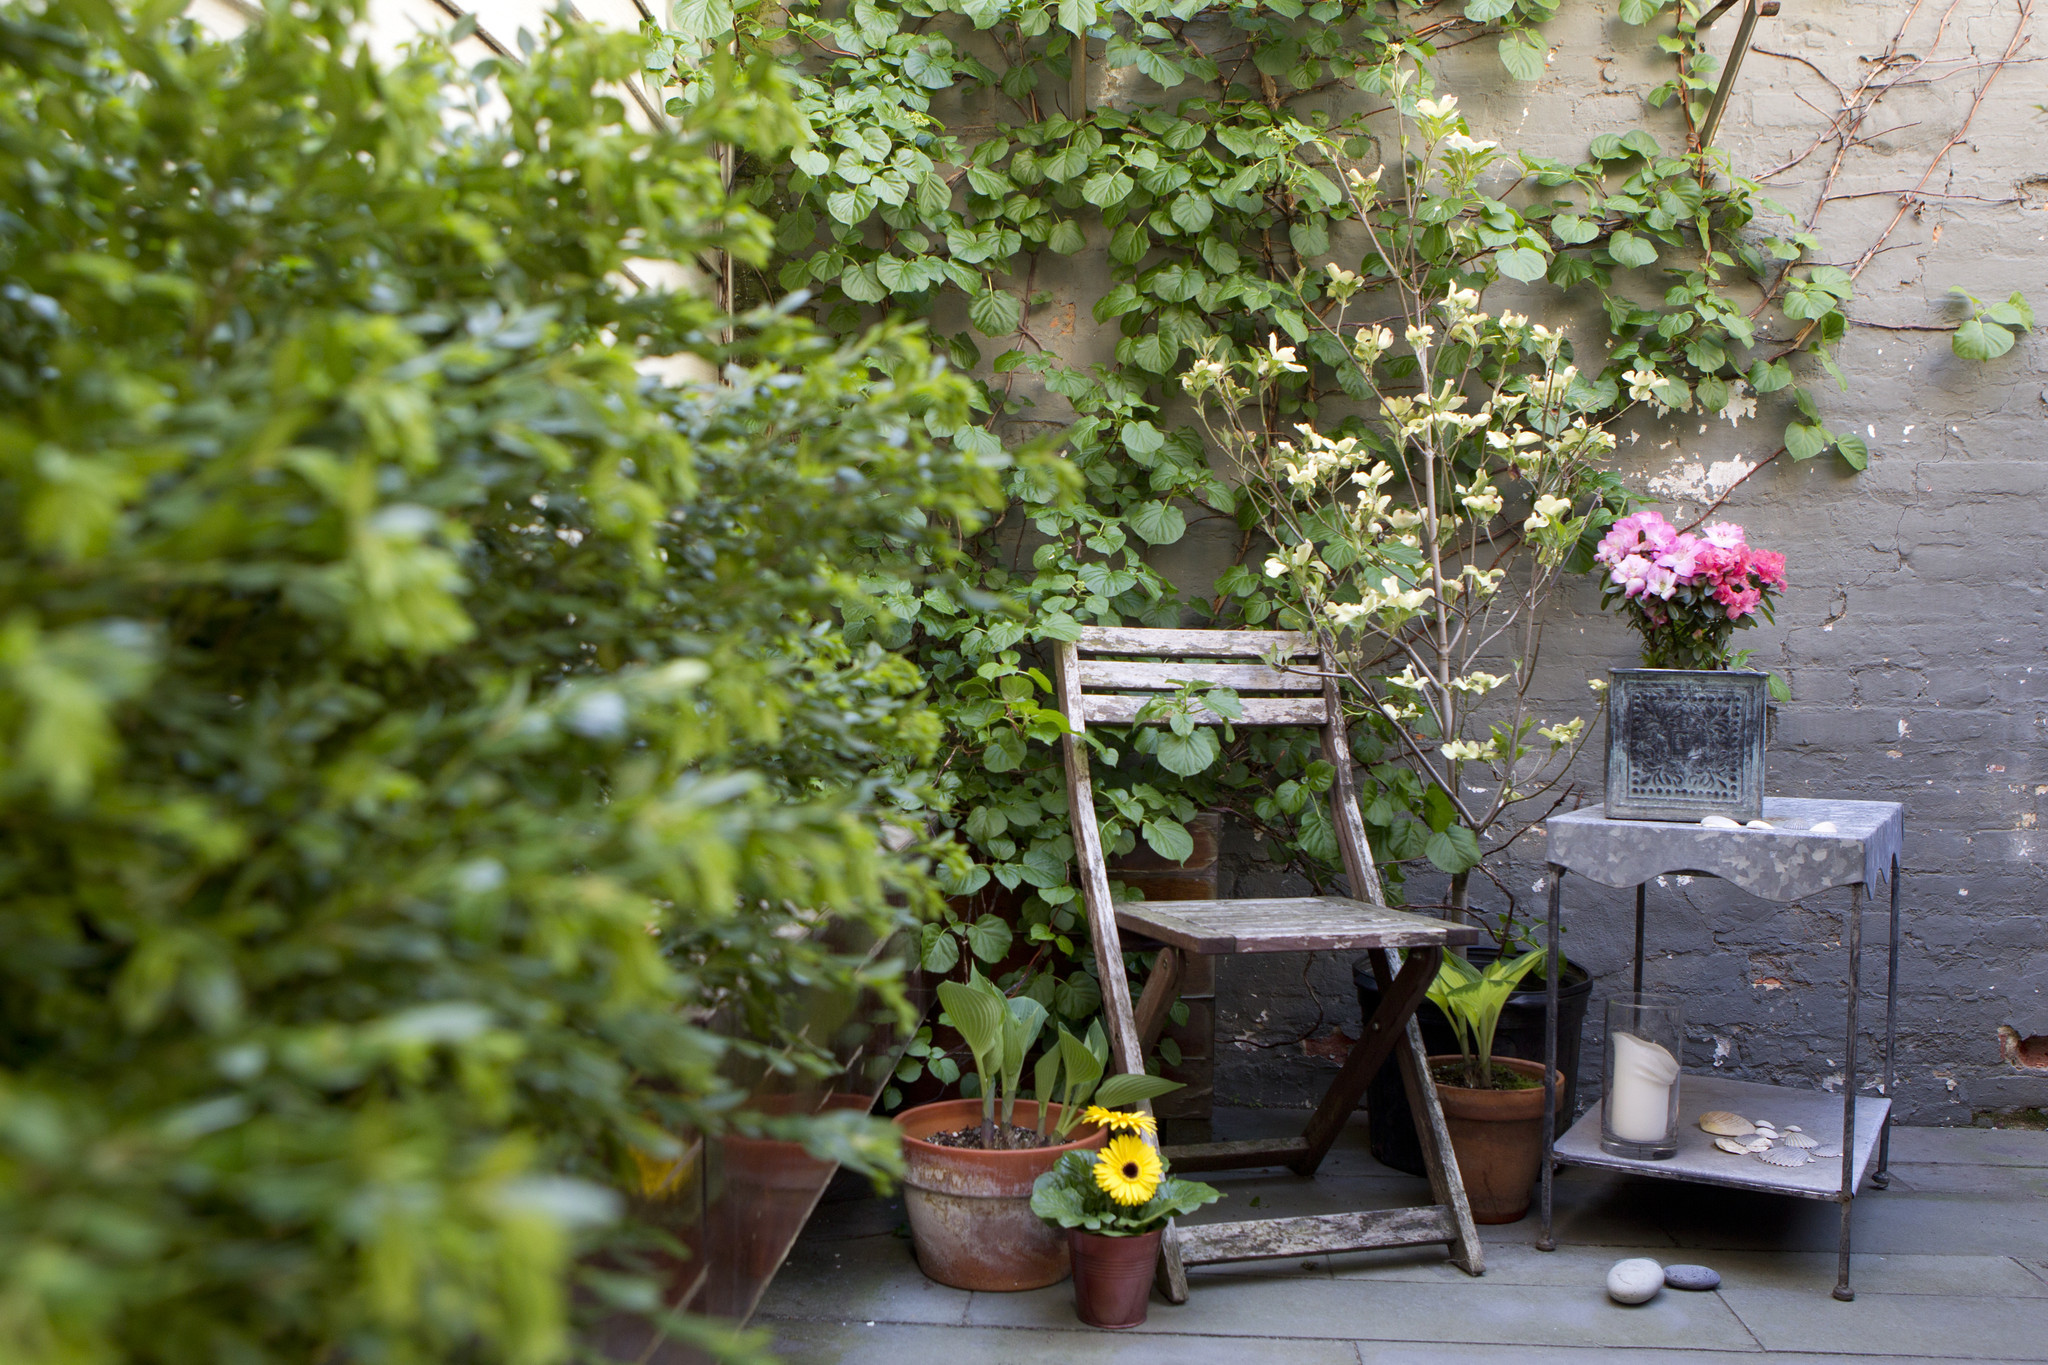 Vertical gardening tips: Add beauty and function to a small yardVertical gardening tips: Add beauty and function to a small yard - Baltimore Sun - 웹